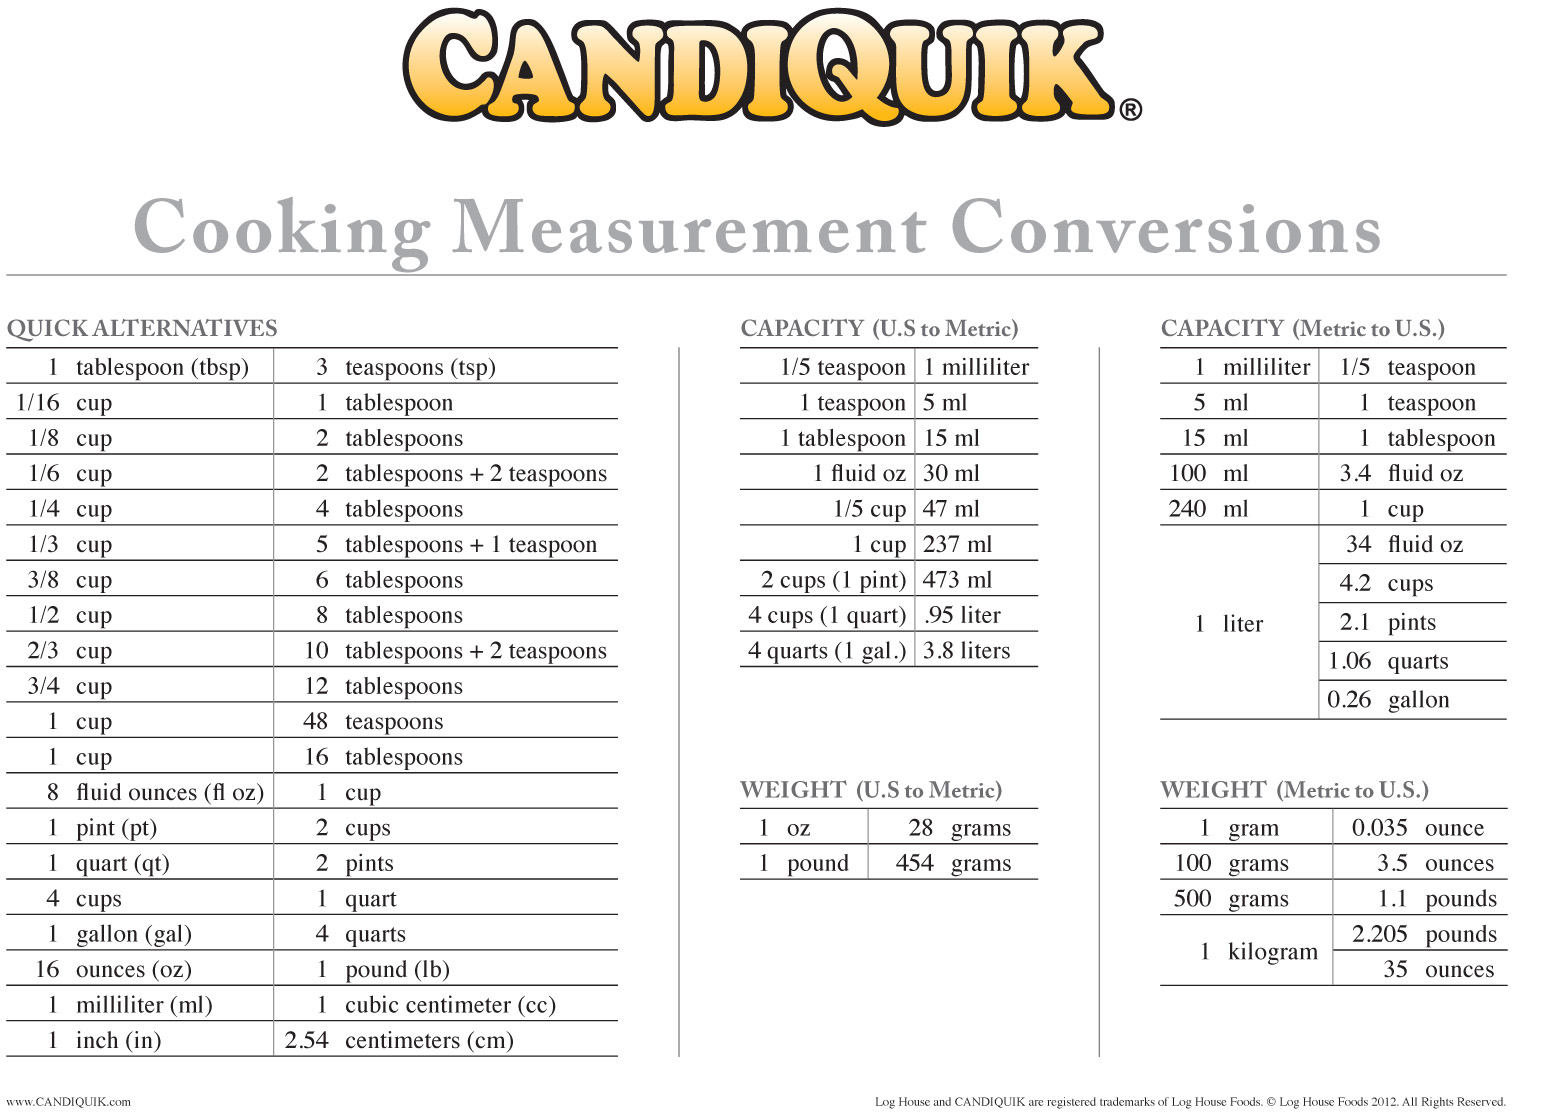 7 Best Images of Printable Cooking Conversion Chart, Printable